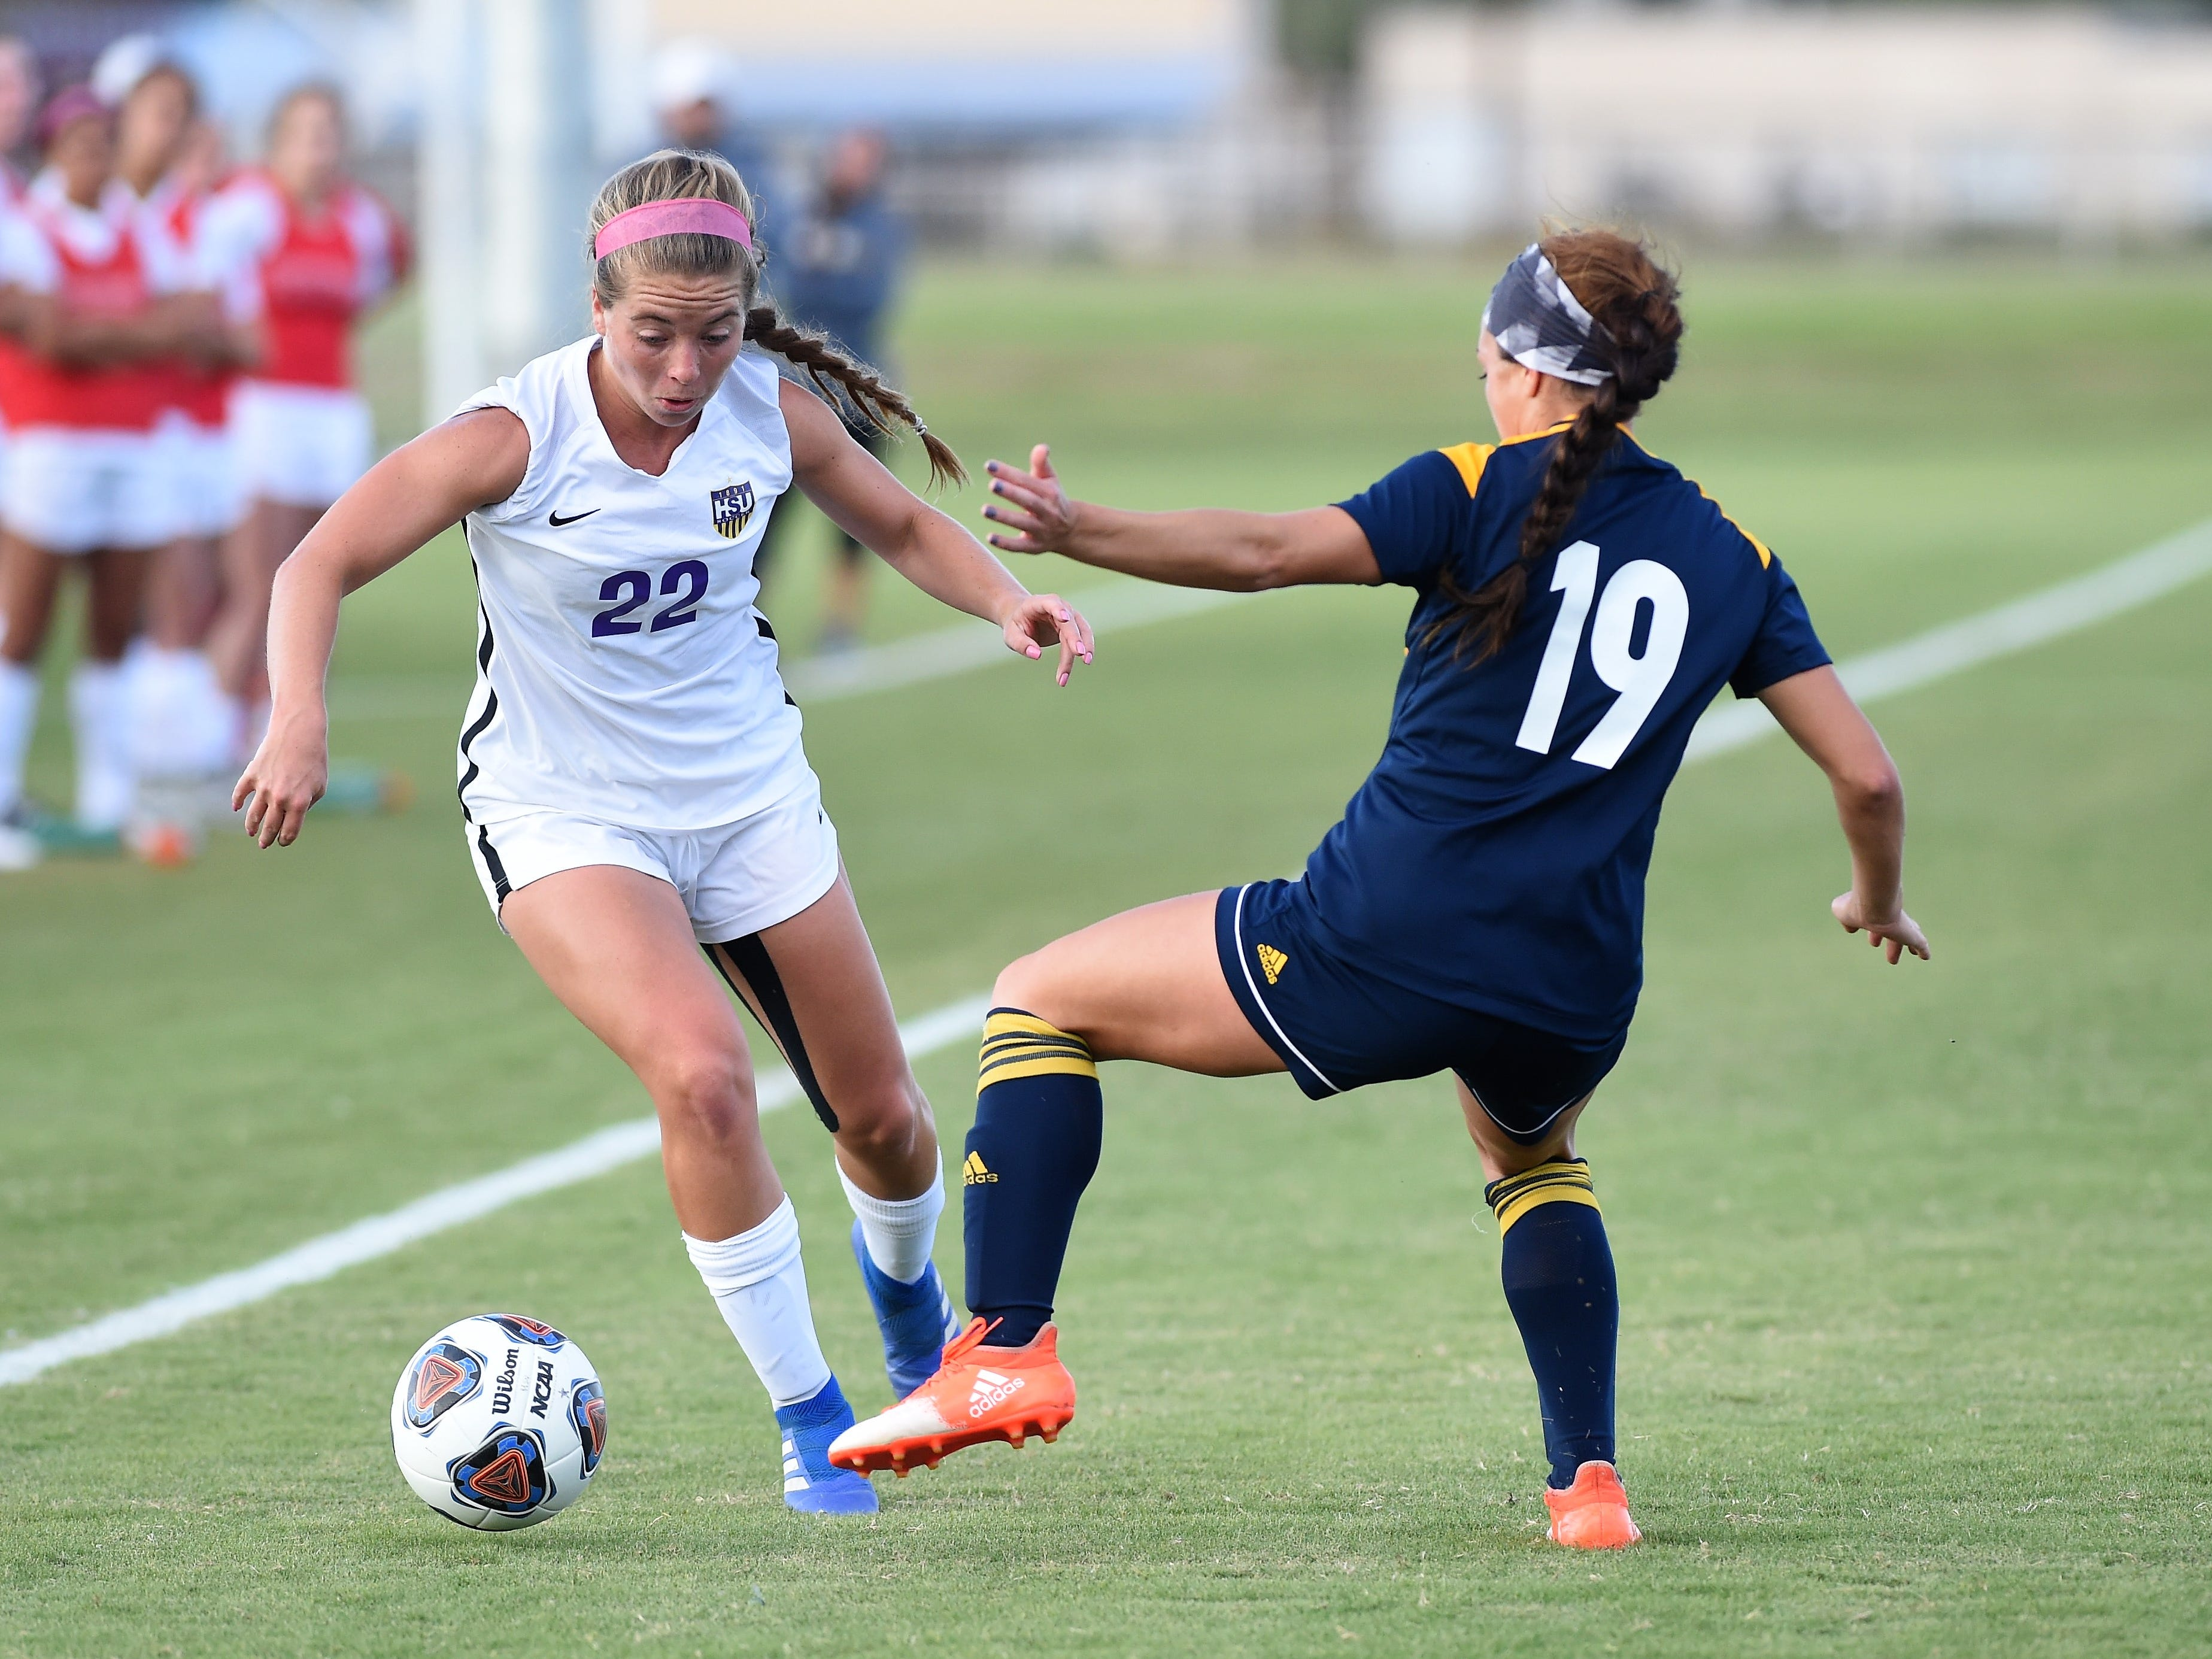 Hardin-Simmons defender Kendell Groom (22) makes a move past Howard Payne's Jayde Miyamoto (19) at the HSU Soccer Complex on Thursday, Oct. 11, 2018. The Cowgirls won 4-1.